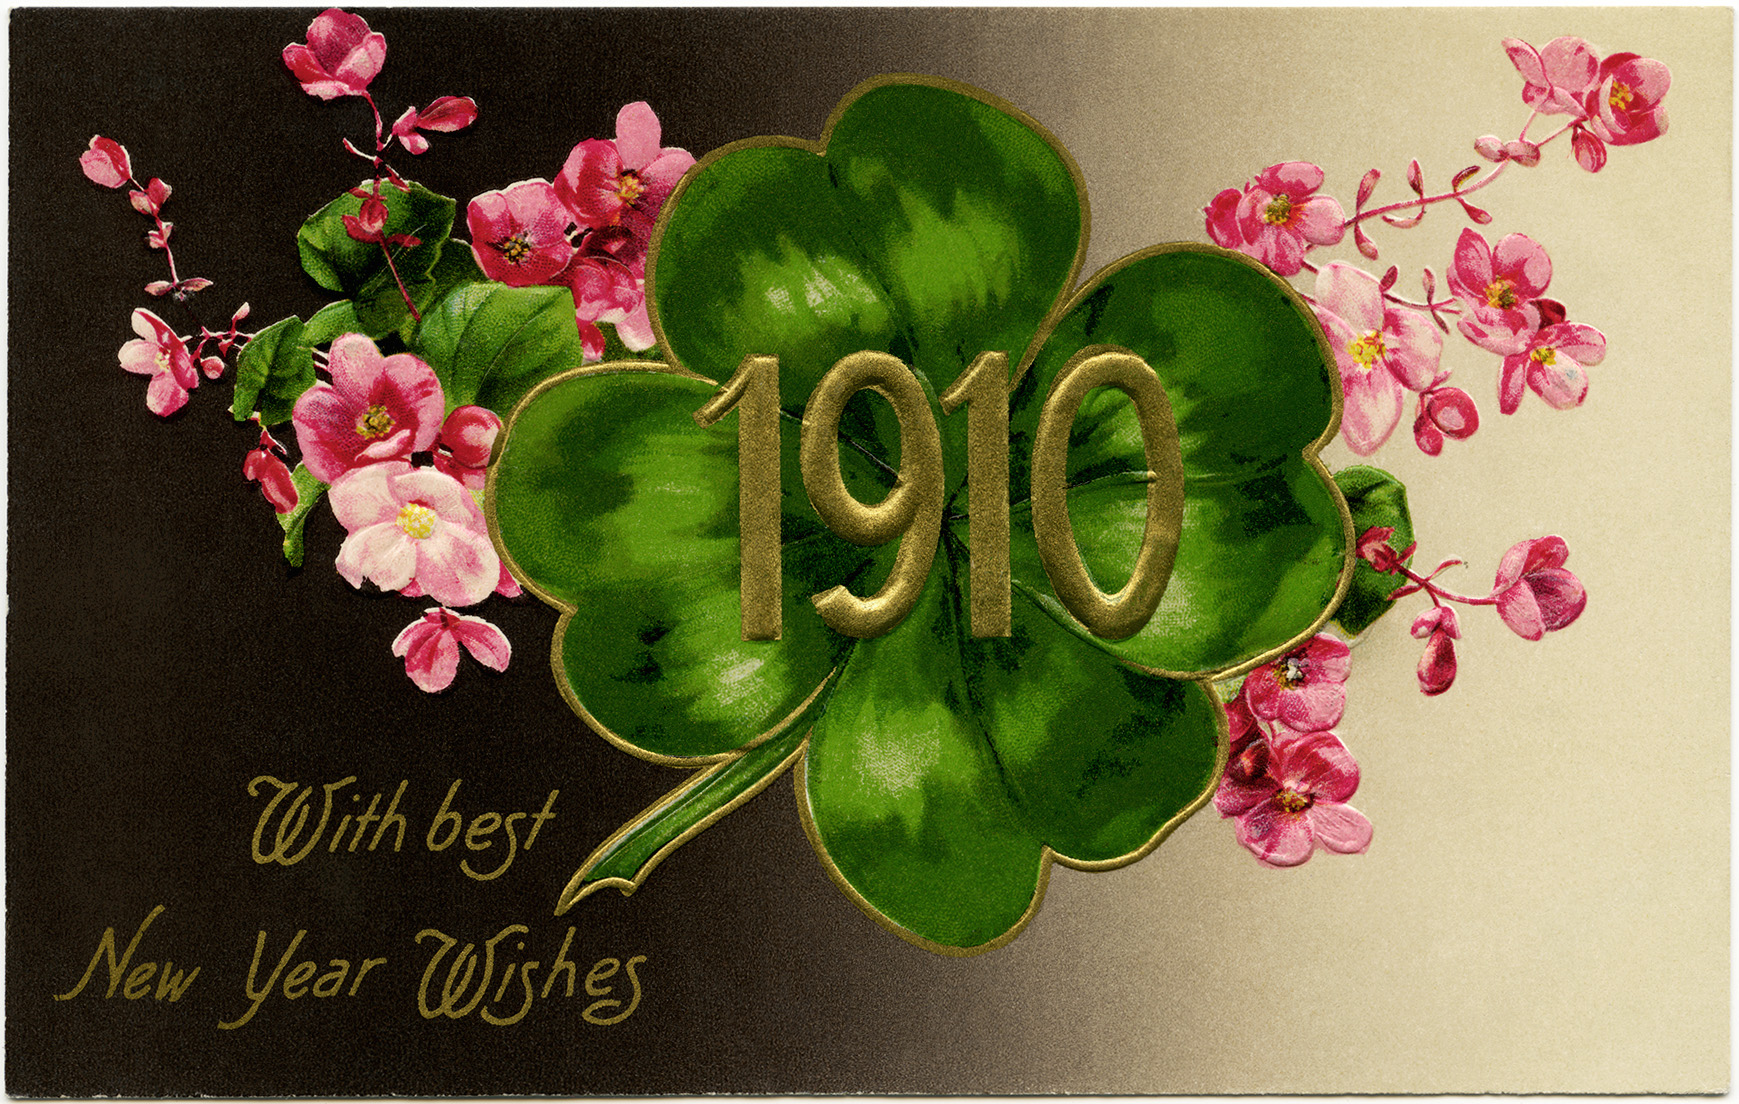 1910 new year postcard illustration